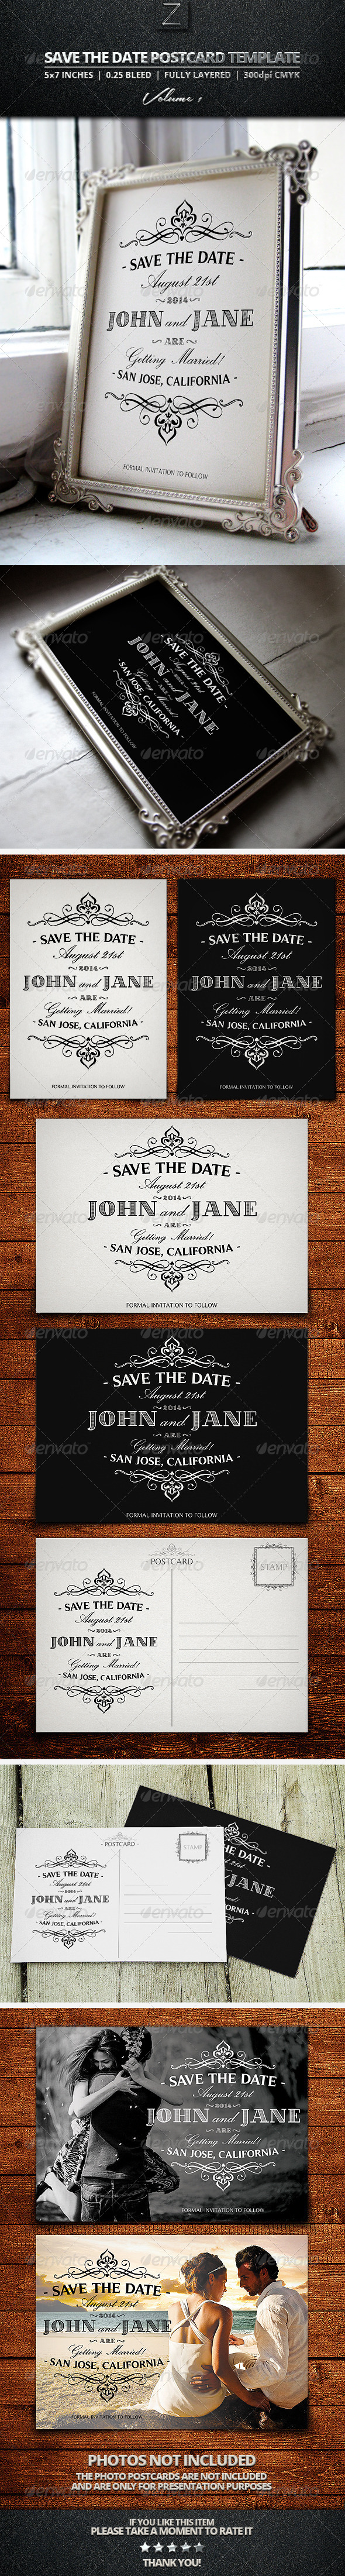 Save The Date Postcard Templates Vol.1 - Weddings Cards & Invites